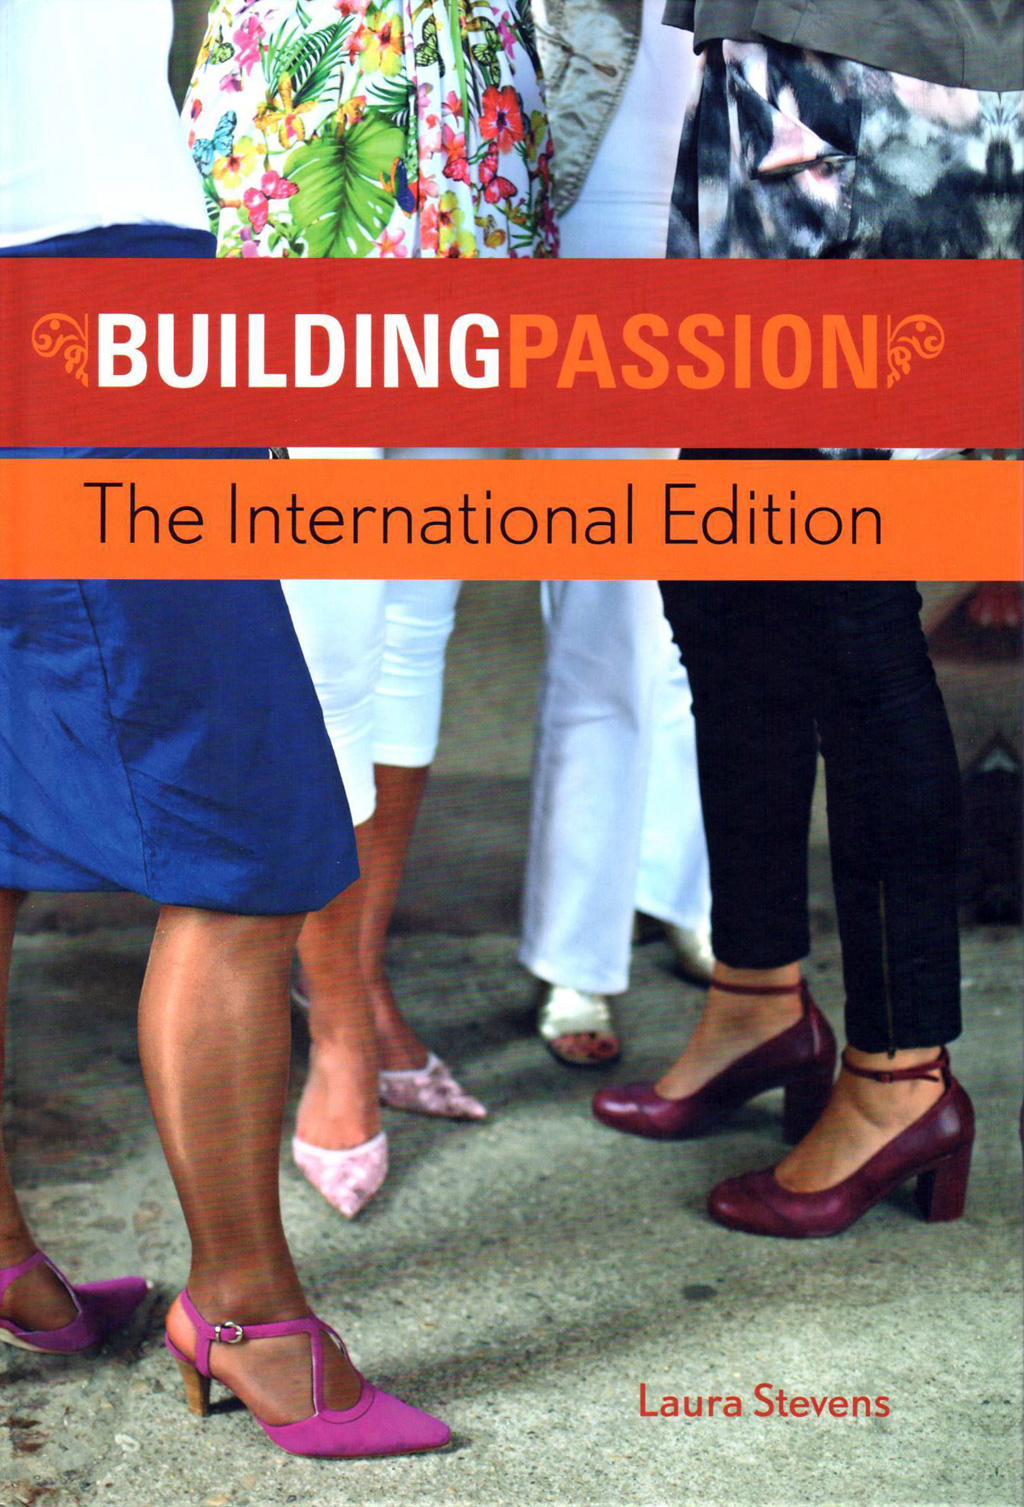 Building Passion – The International Edition